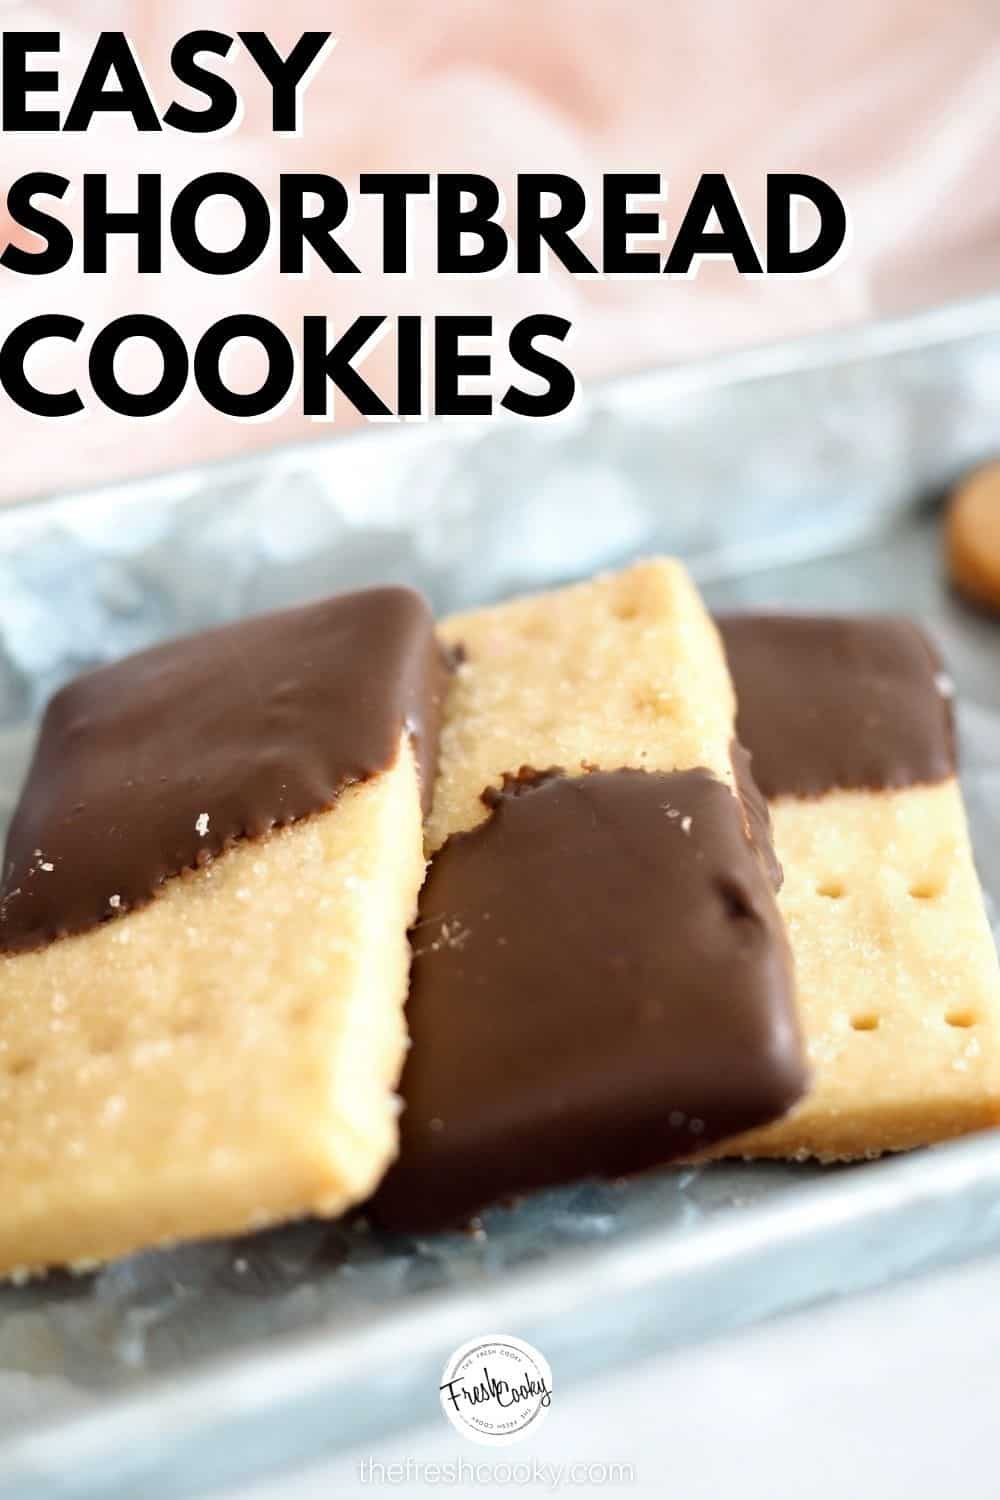 The best easy, shortbread cookie recipe. 4 ingredients plus instructions on how to dip in chocolate, or cut out. A classic buttery cookie, perfect for the Christmas holiday baking. #thefreshcooky #holidaycookierecipes #shortbread via @thefreshcooky